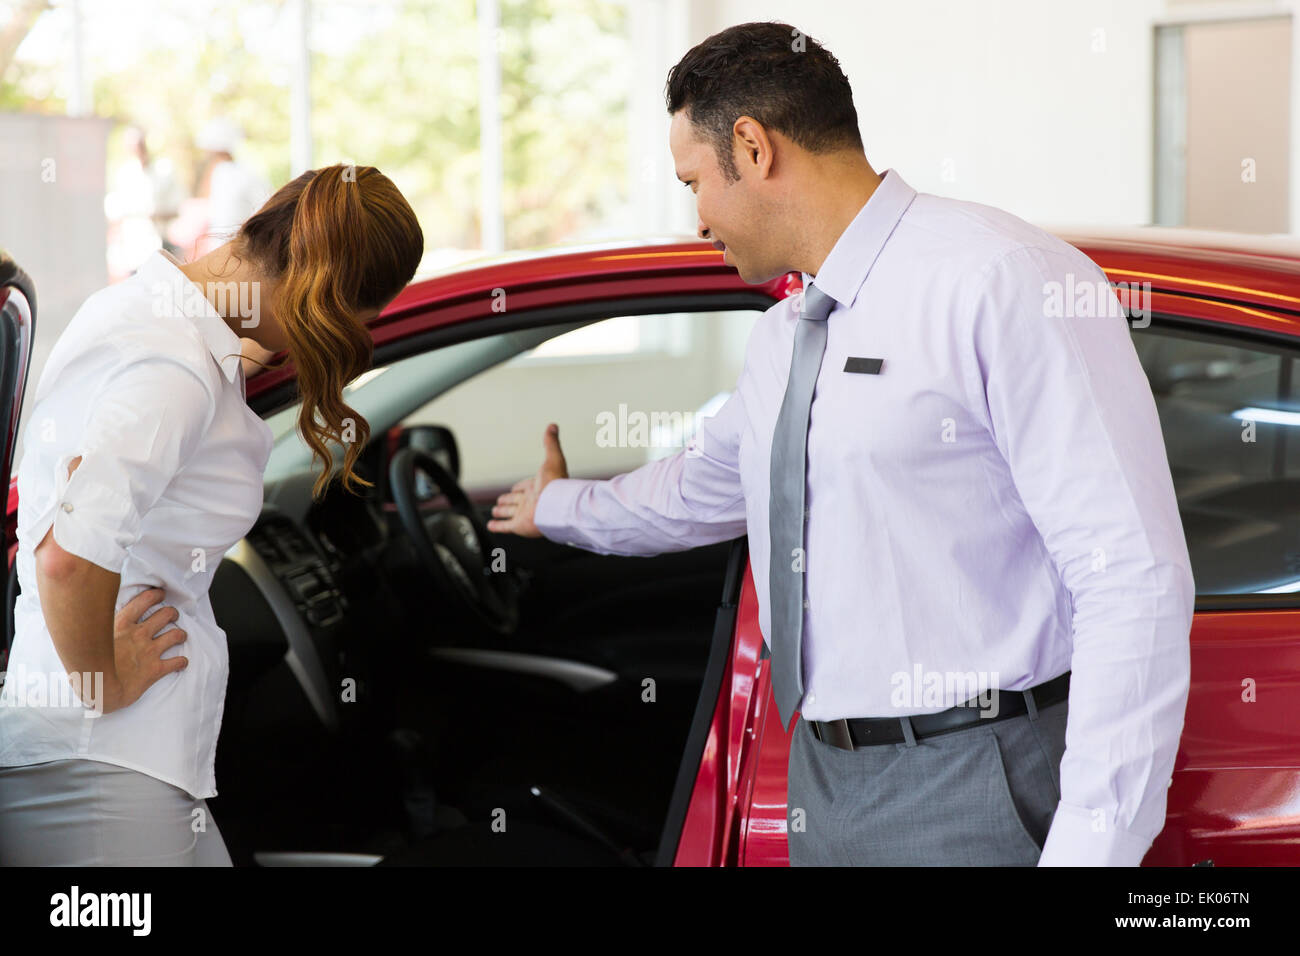 vehicle salesman showing a new car to a potential buyer in showroom - Stock Image